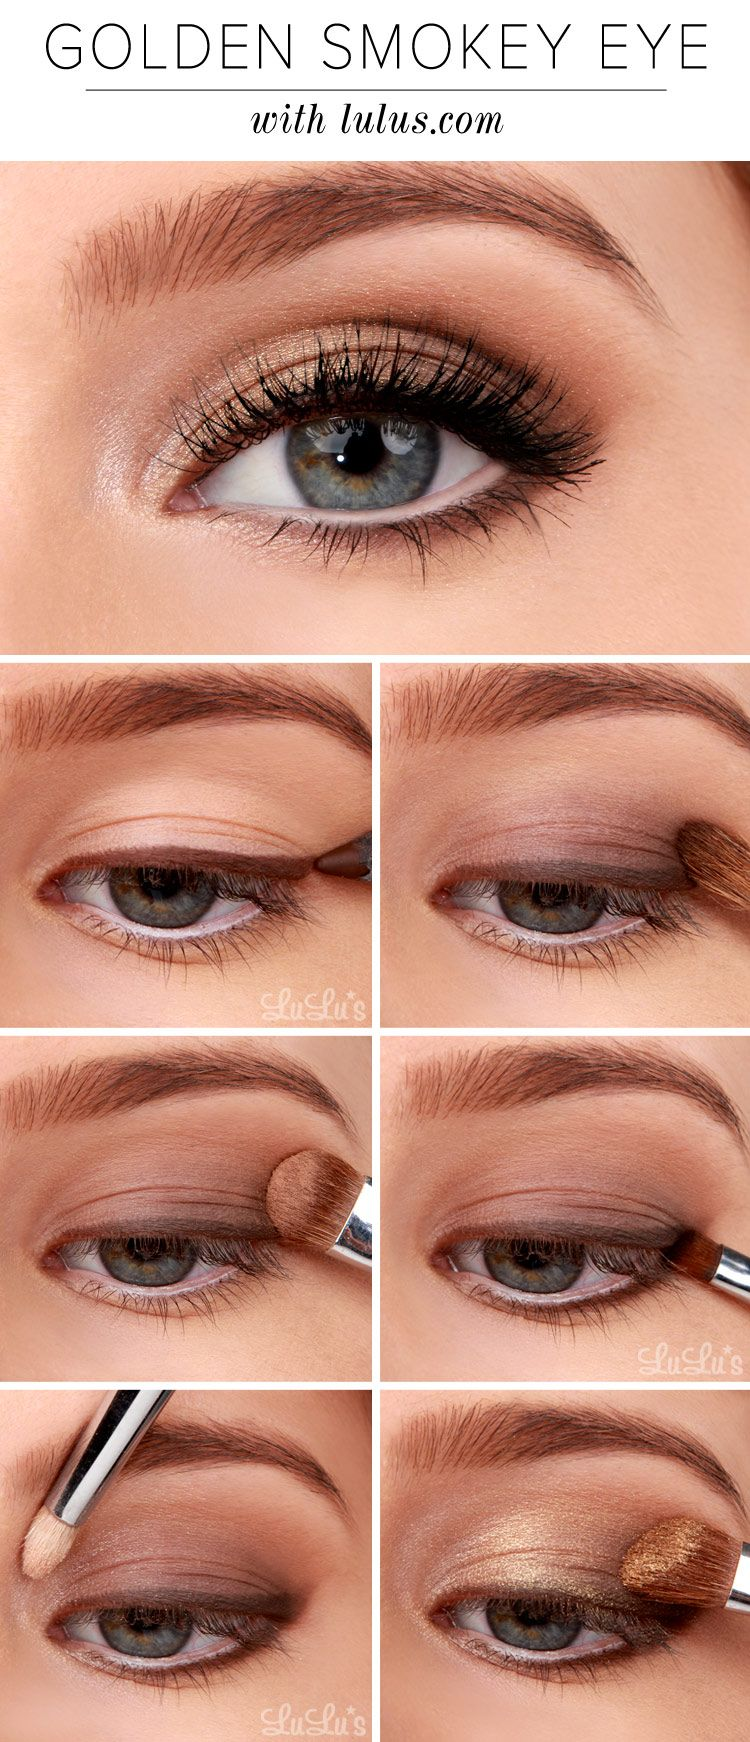 Lulus how to golden smokey eyeshadow tutorial smokey eye golden smokey eye tutorial 10 brown eyeshadow tutorials for seductive eyes gleamitup this is pretty and not so dark as most smokey eyes baditri Gallery